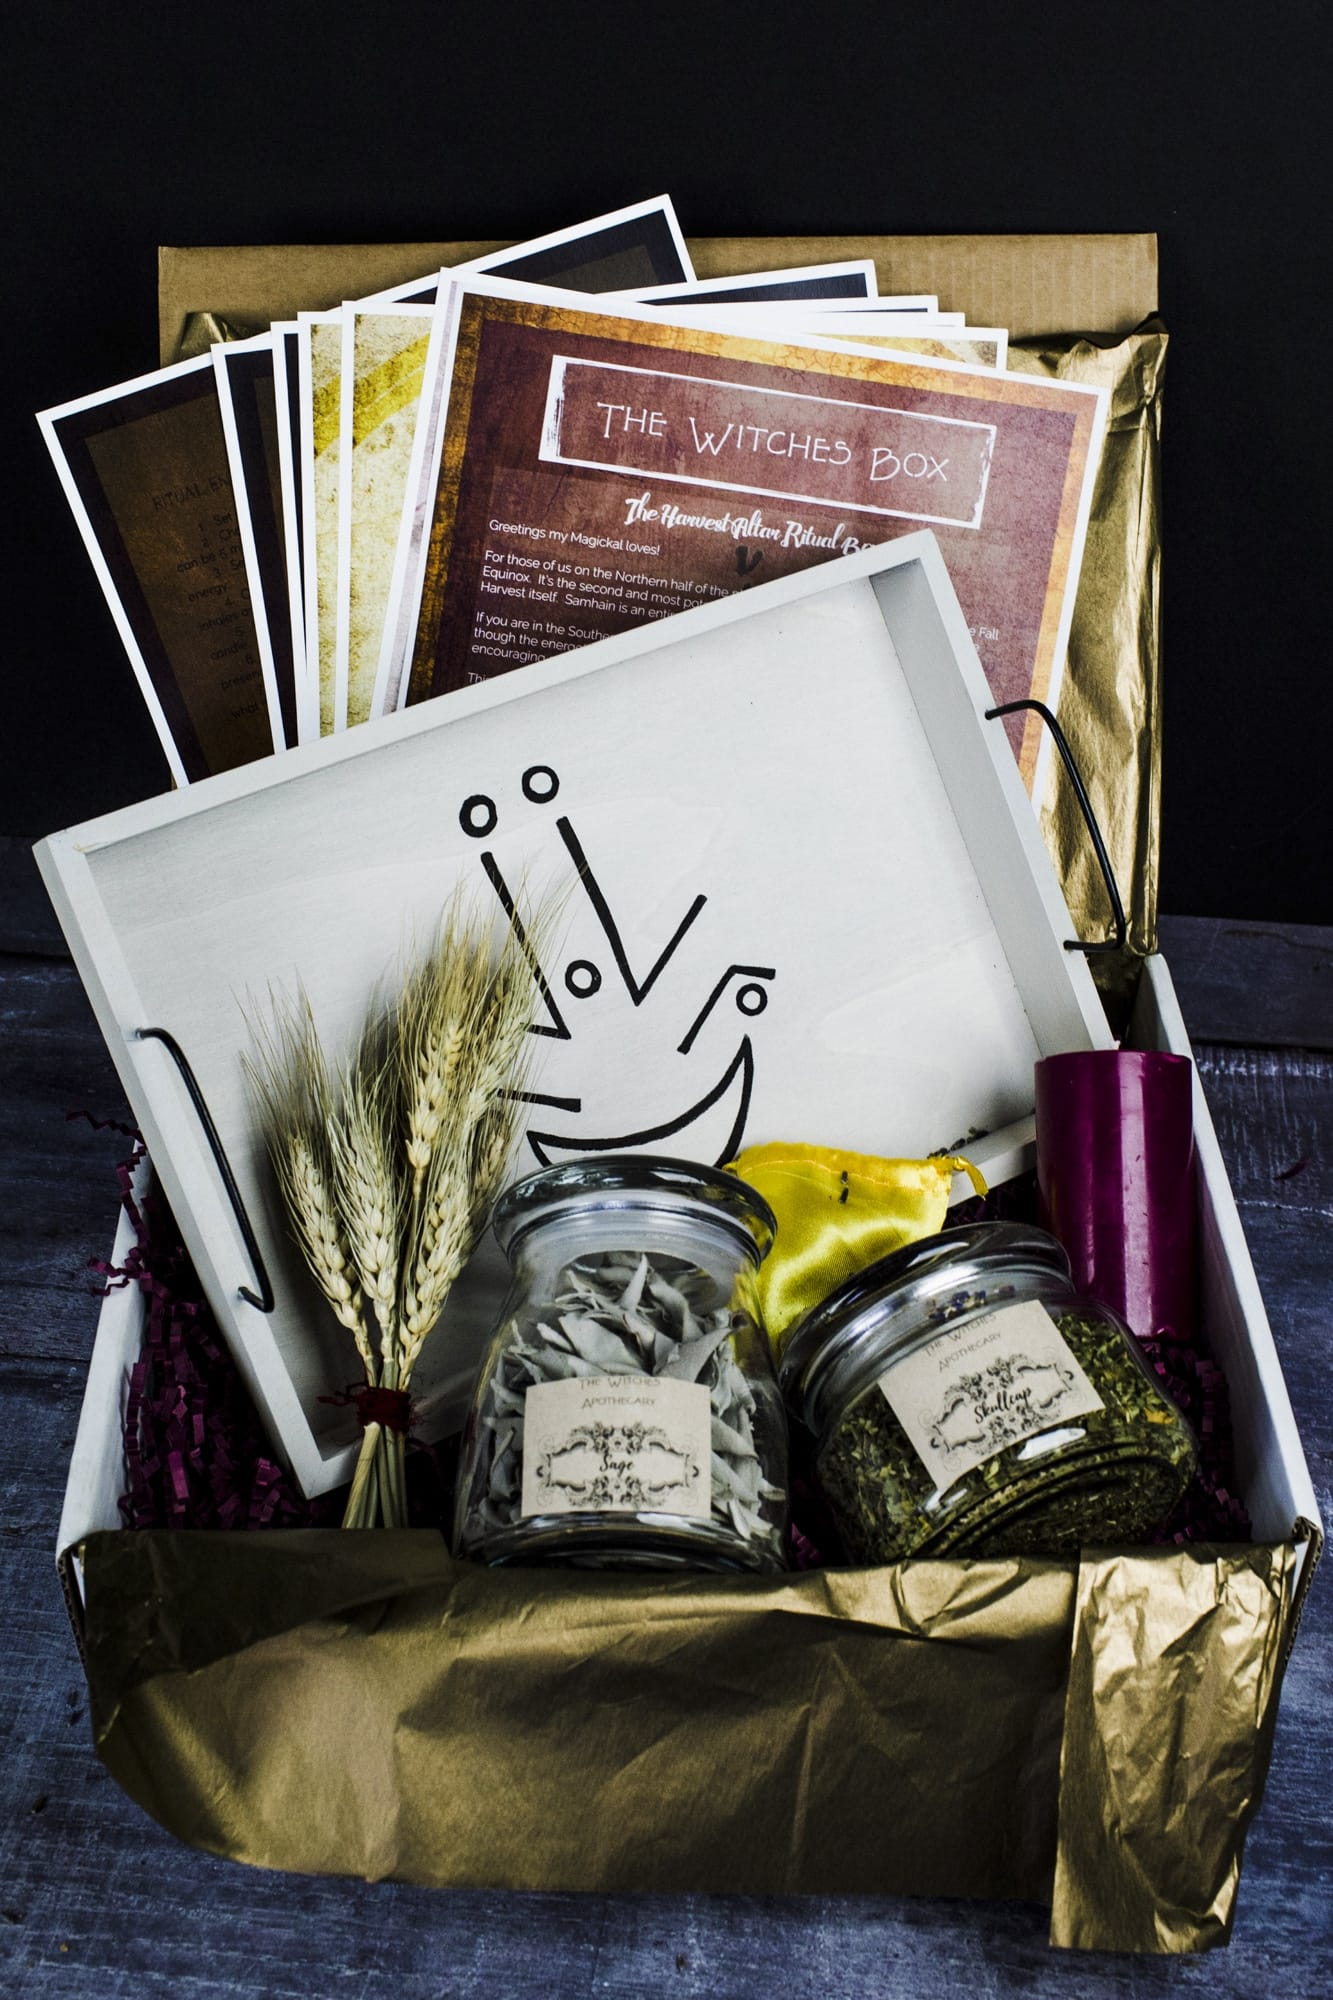 Monthly Witches Box Subscription The Witches Box